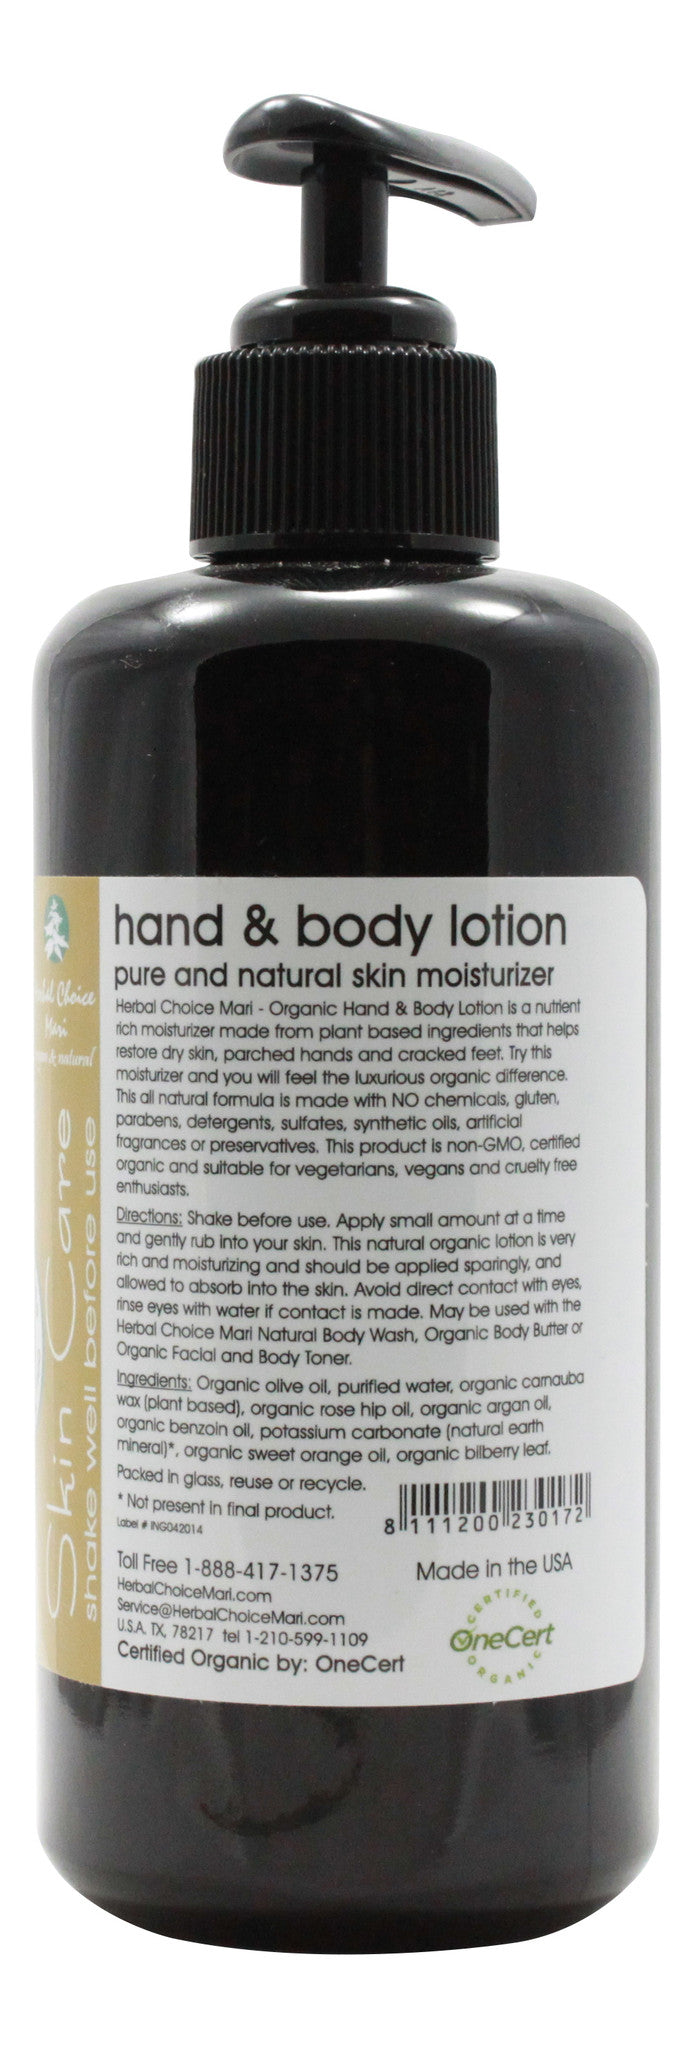 Organic Hand & Body Lotion - Unscented - 6.8 oz - Info